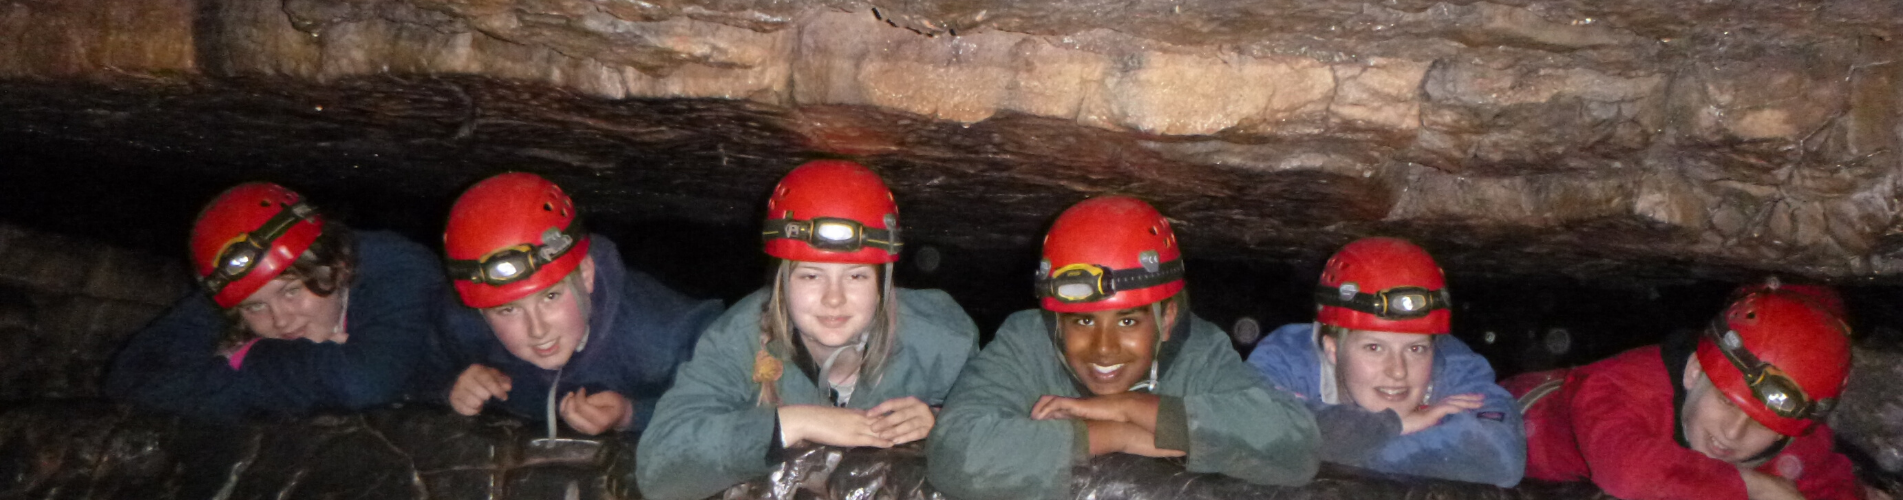 Caving Scouts